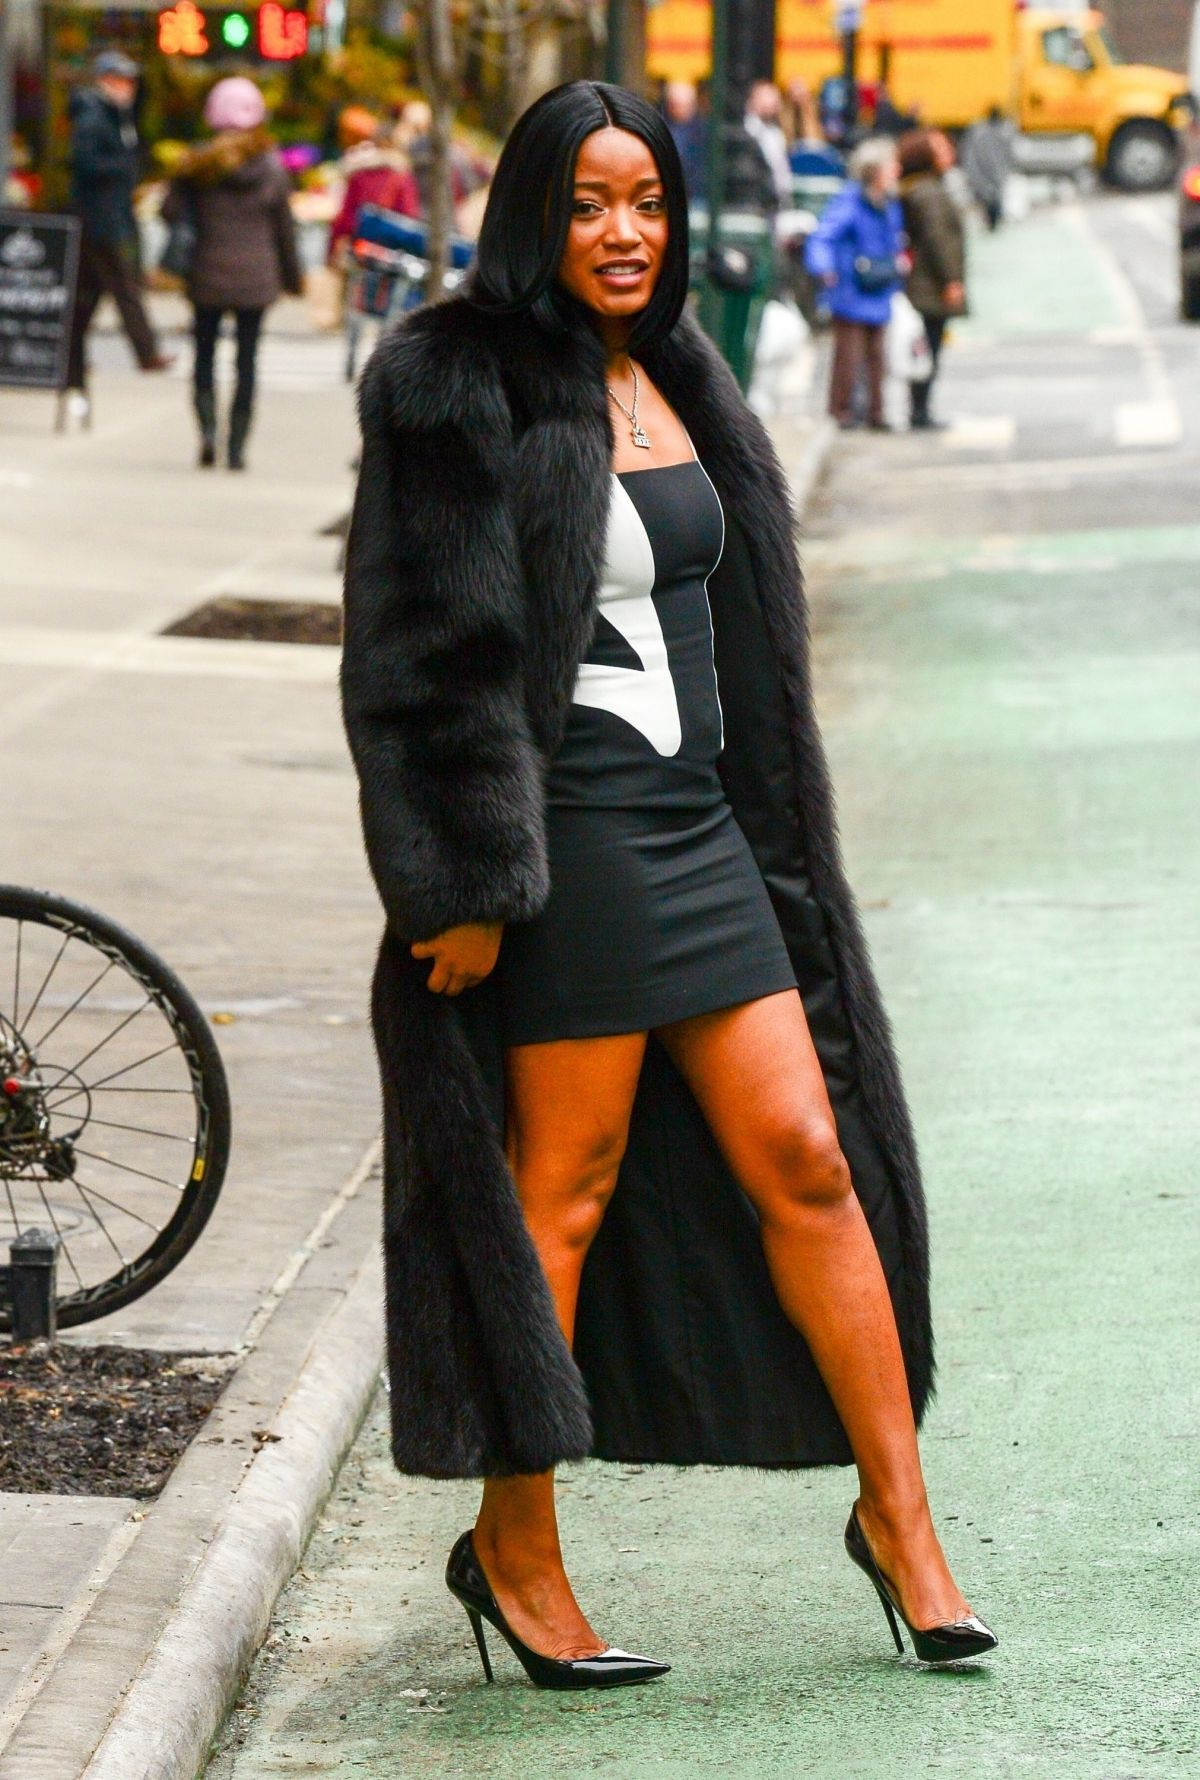 KEKE PALMER Out and About in New York 01/13/2018 – HawtCelebsKeke Palmer Rolling Out